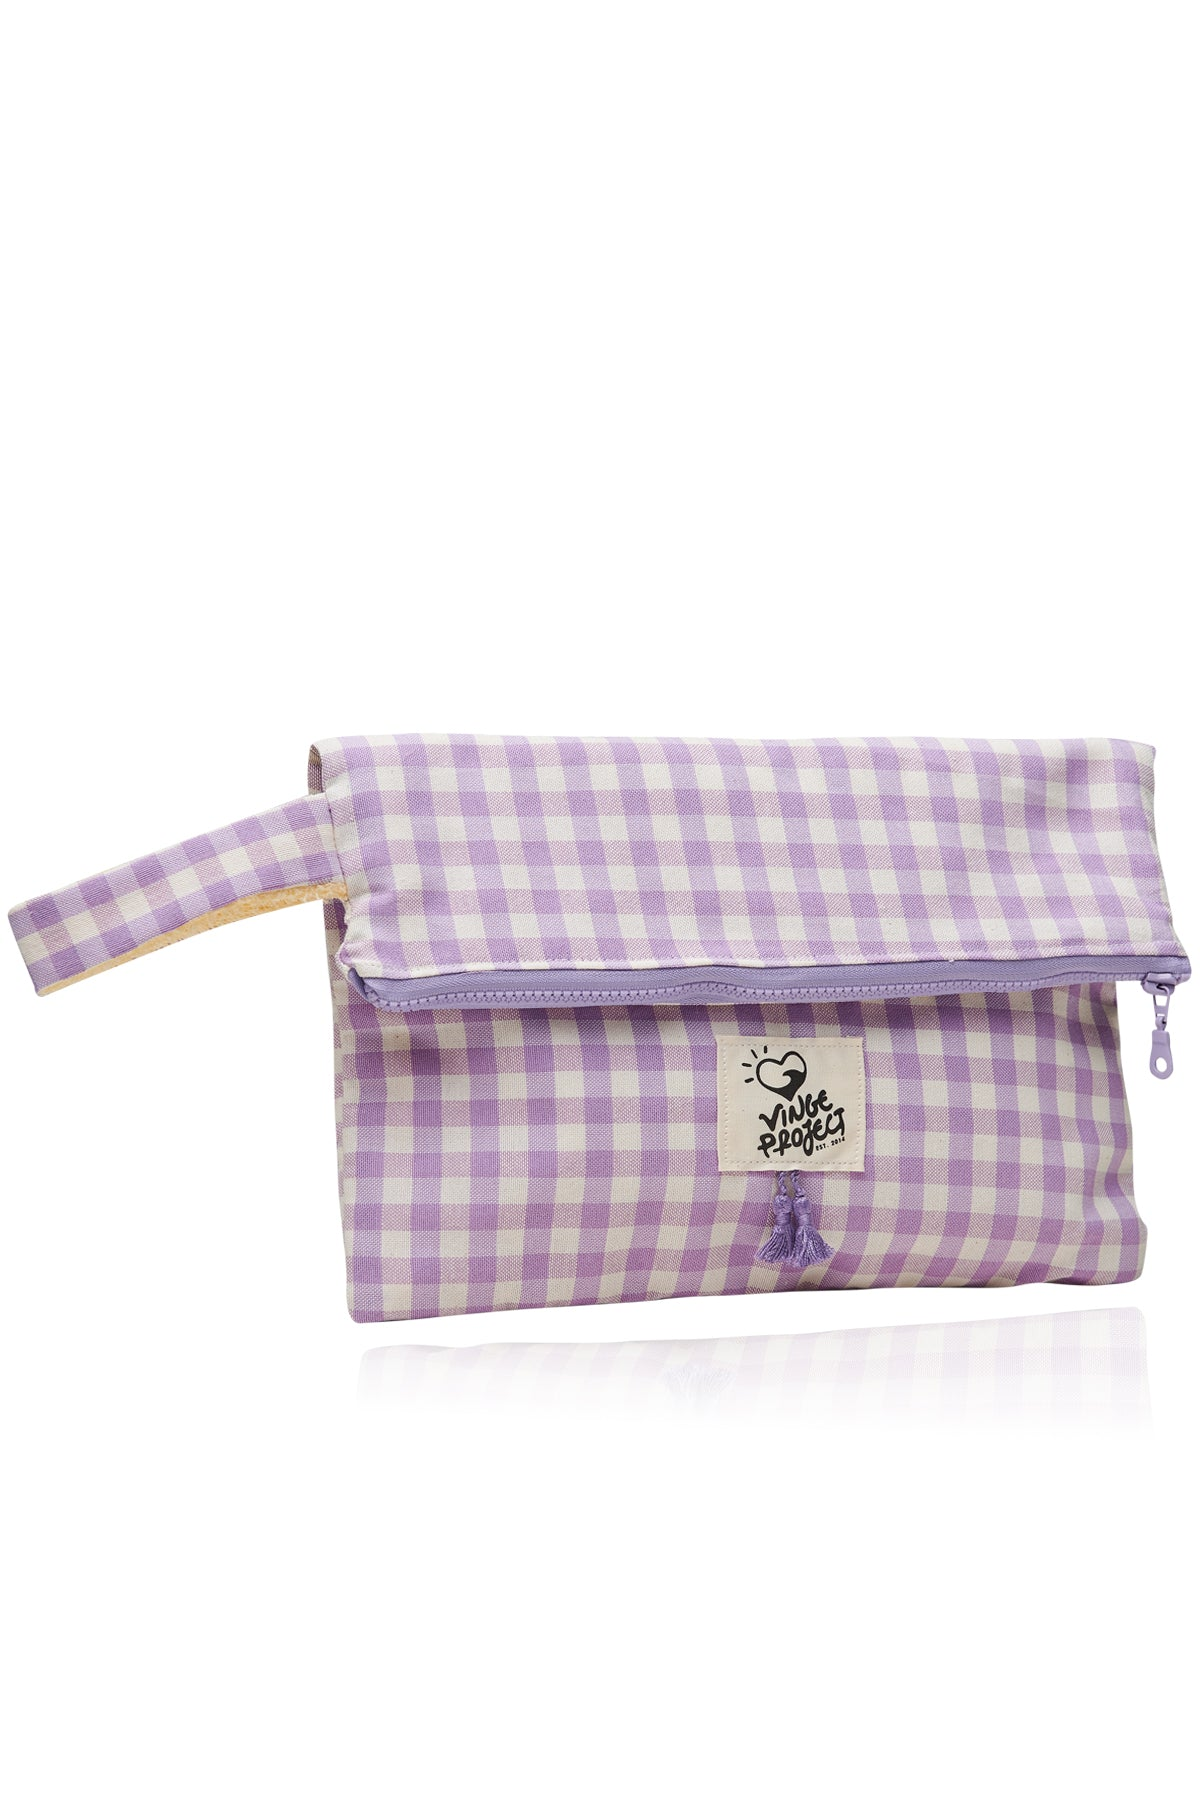 Cycladic in Lilac 𝐁𝐢𝐠 Waterproof Clutch Bag